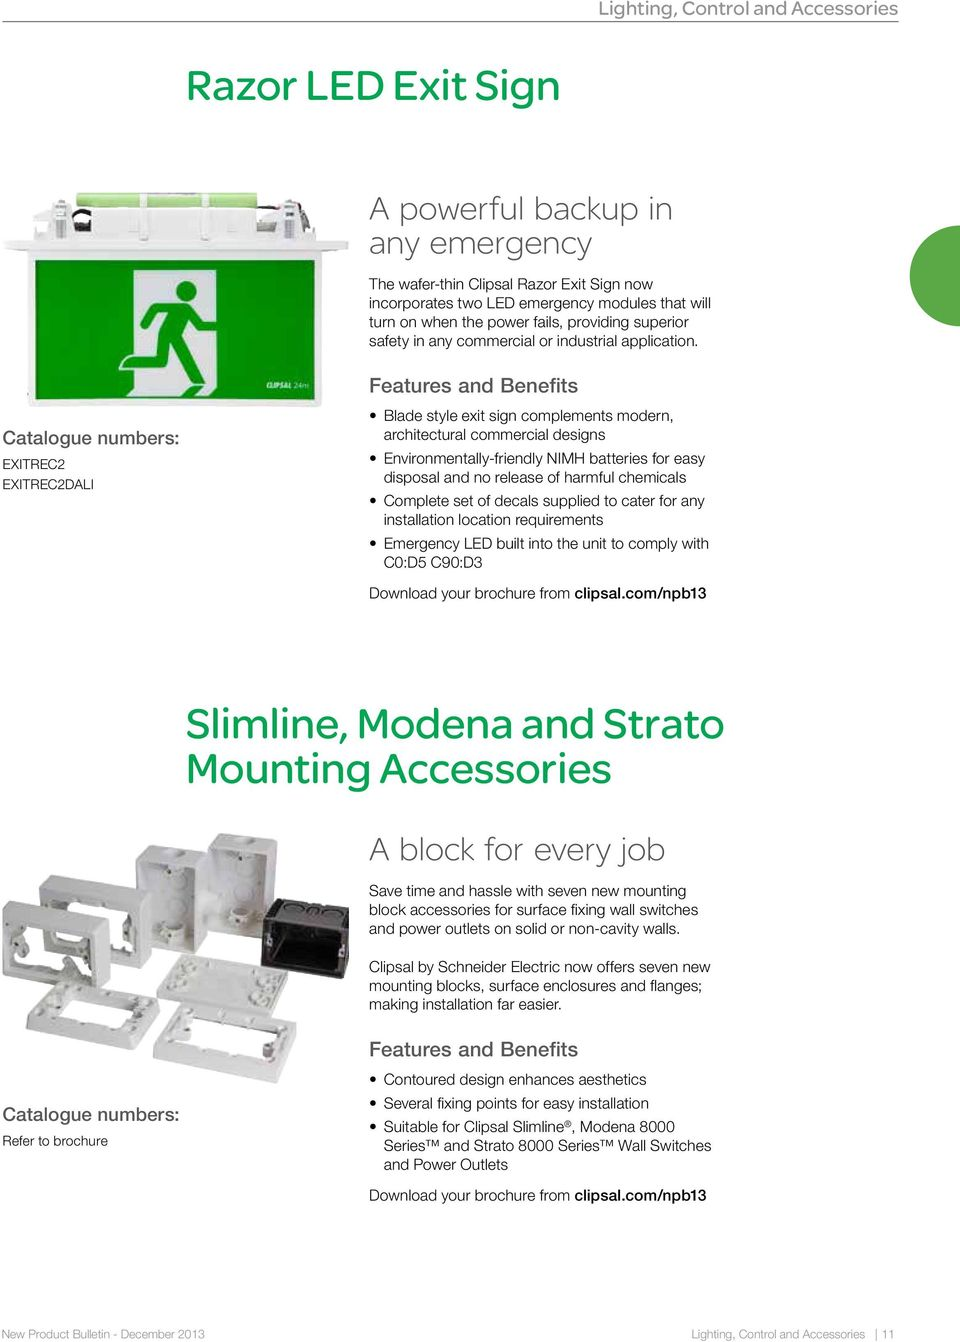 New Product Bulletin Pdf Motion Sensors Clipsal By Schneider Electric Exitrec2 Exitrec2dali Blade Style Exit Sign Complements Modern Architectural Commercial Designs Environmentally Friendly Nimh